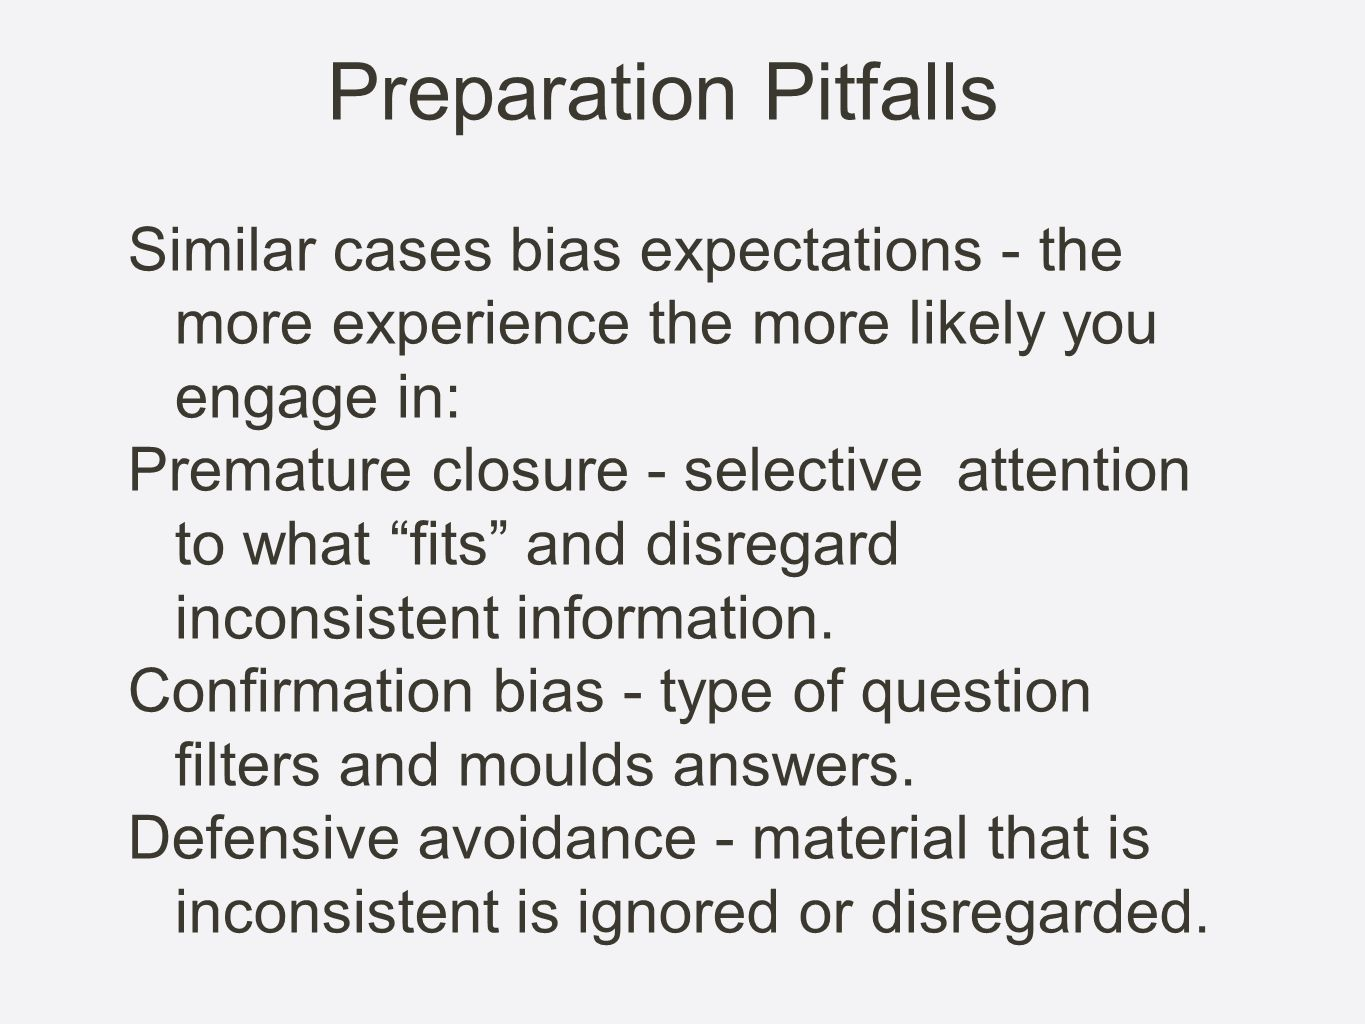 Preparation Pitfalls Similar cases bias expectations - the more experience the more likely you engage in: